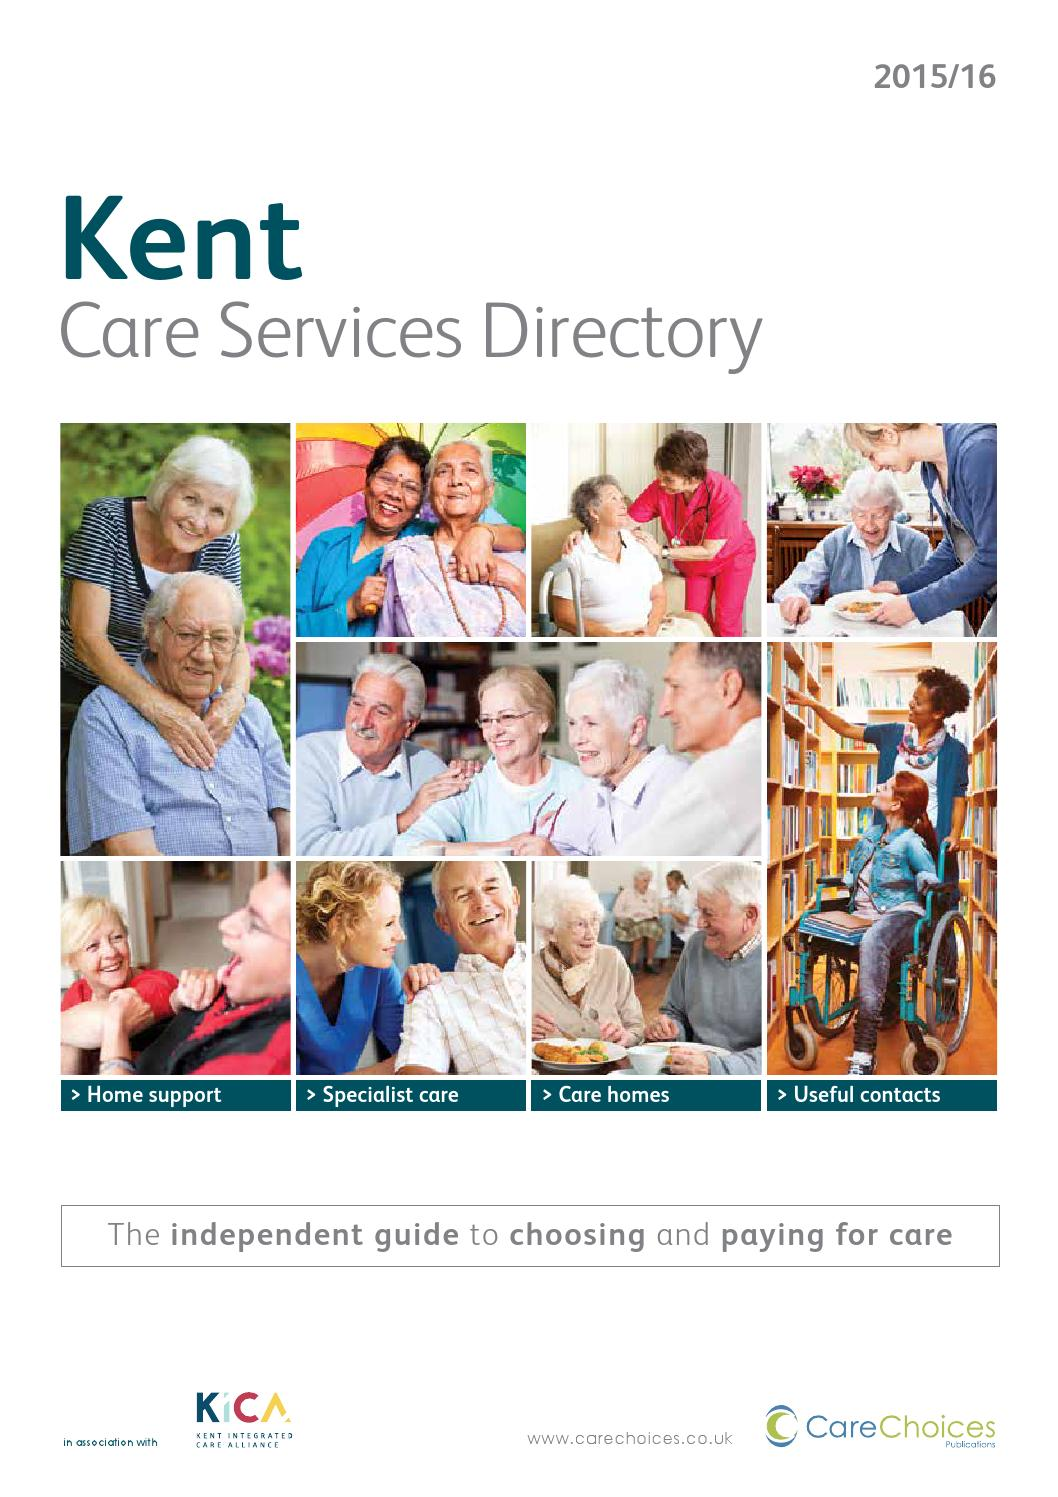 Kent Care Services Directory 2015 16 By Choices Ltd